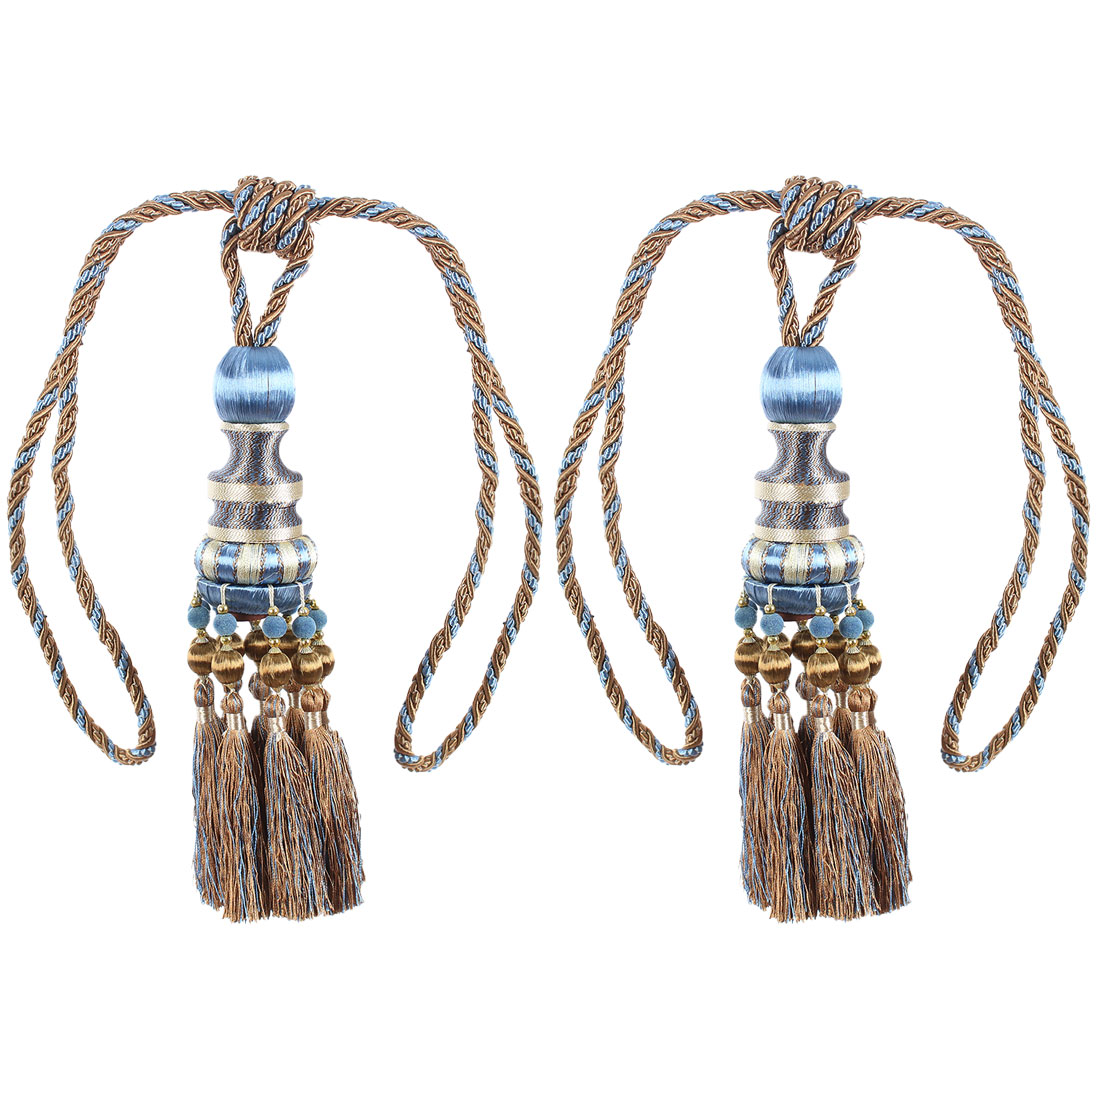 2Pcs Beaded Window Curtain Tassel Fringe Tieback Tie Back Home Decor Blue